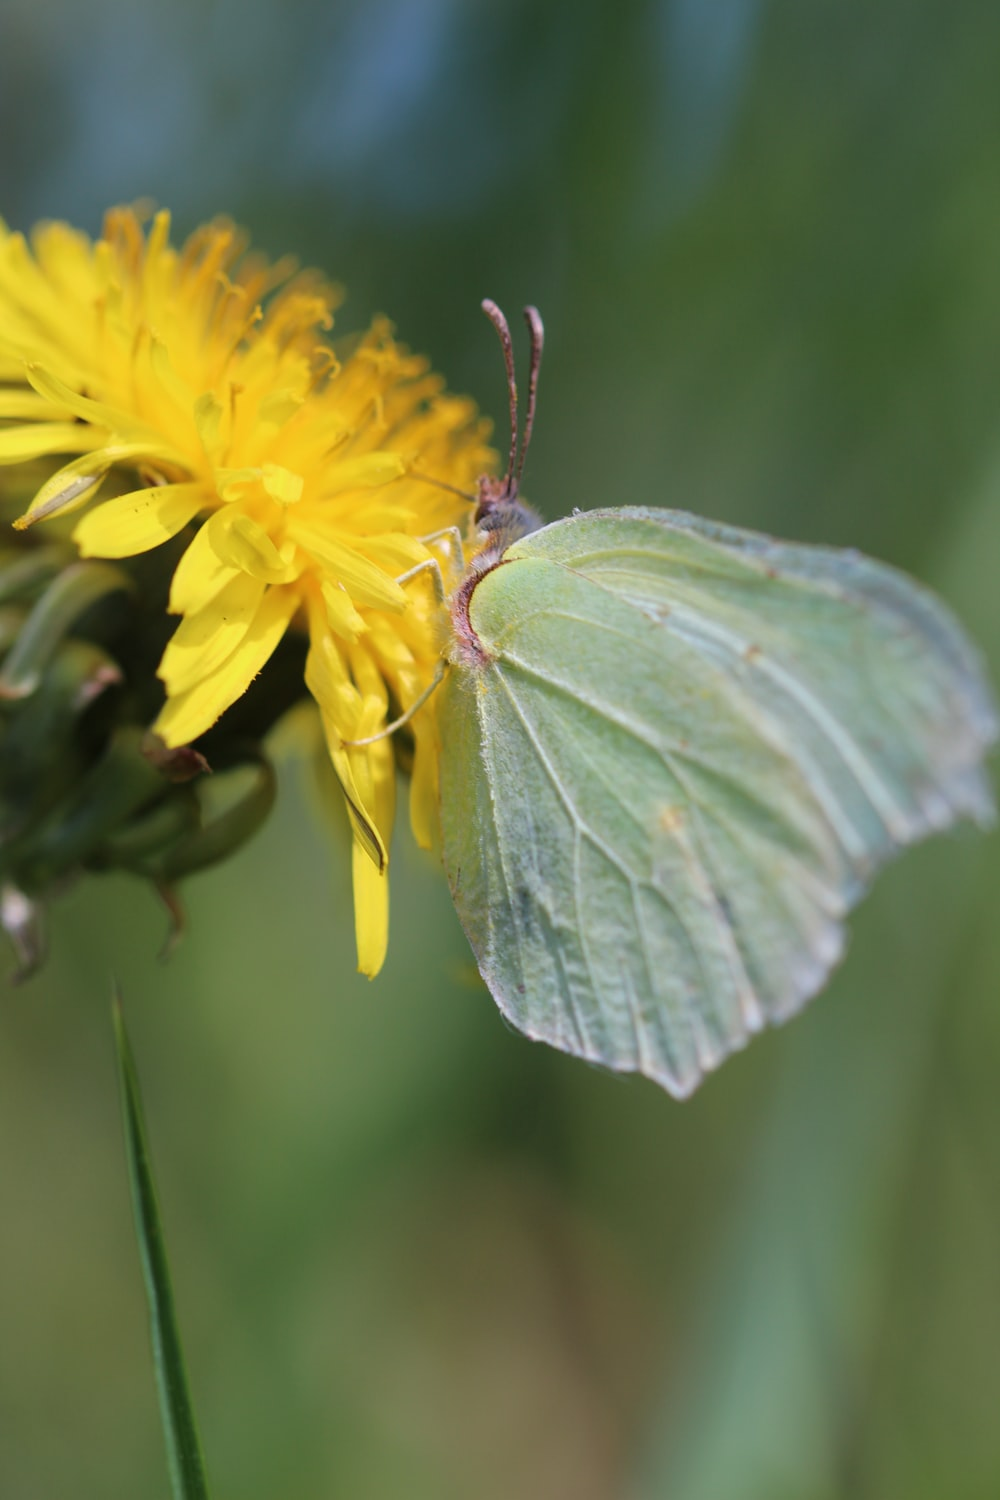 yellow butterfly perched on yellow flower in close up photography during daytime